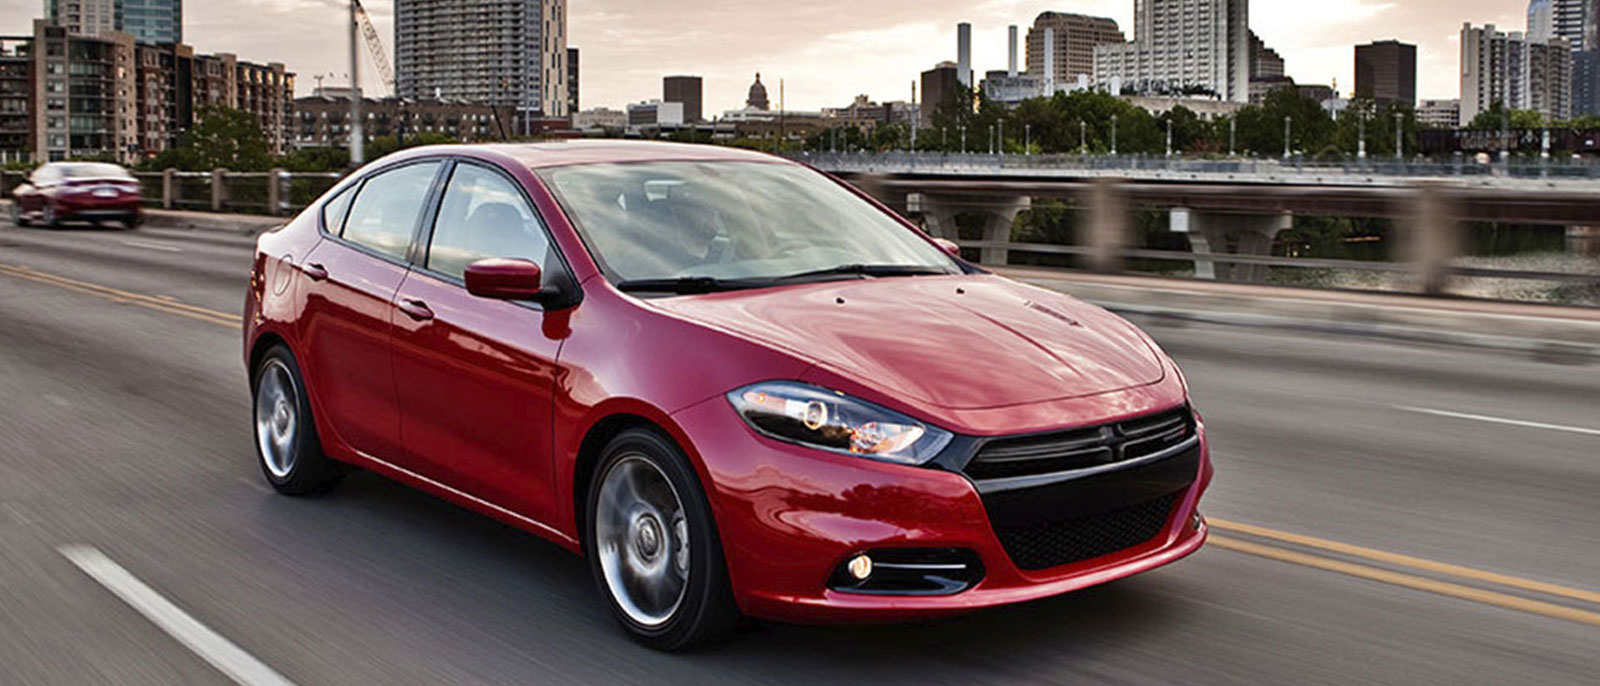 2015 Dodge Dart in red